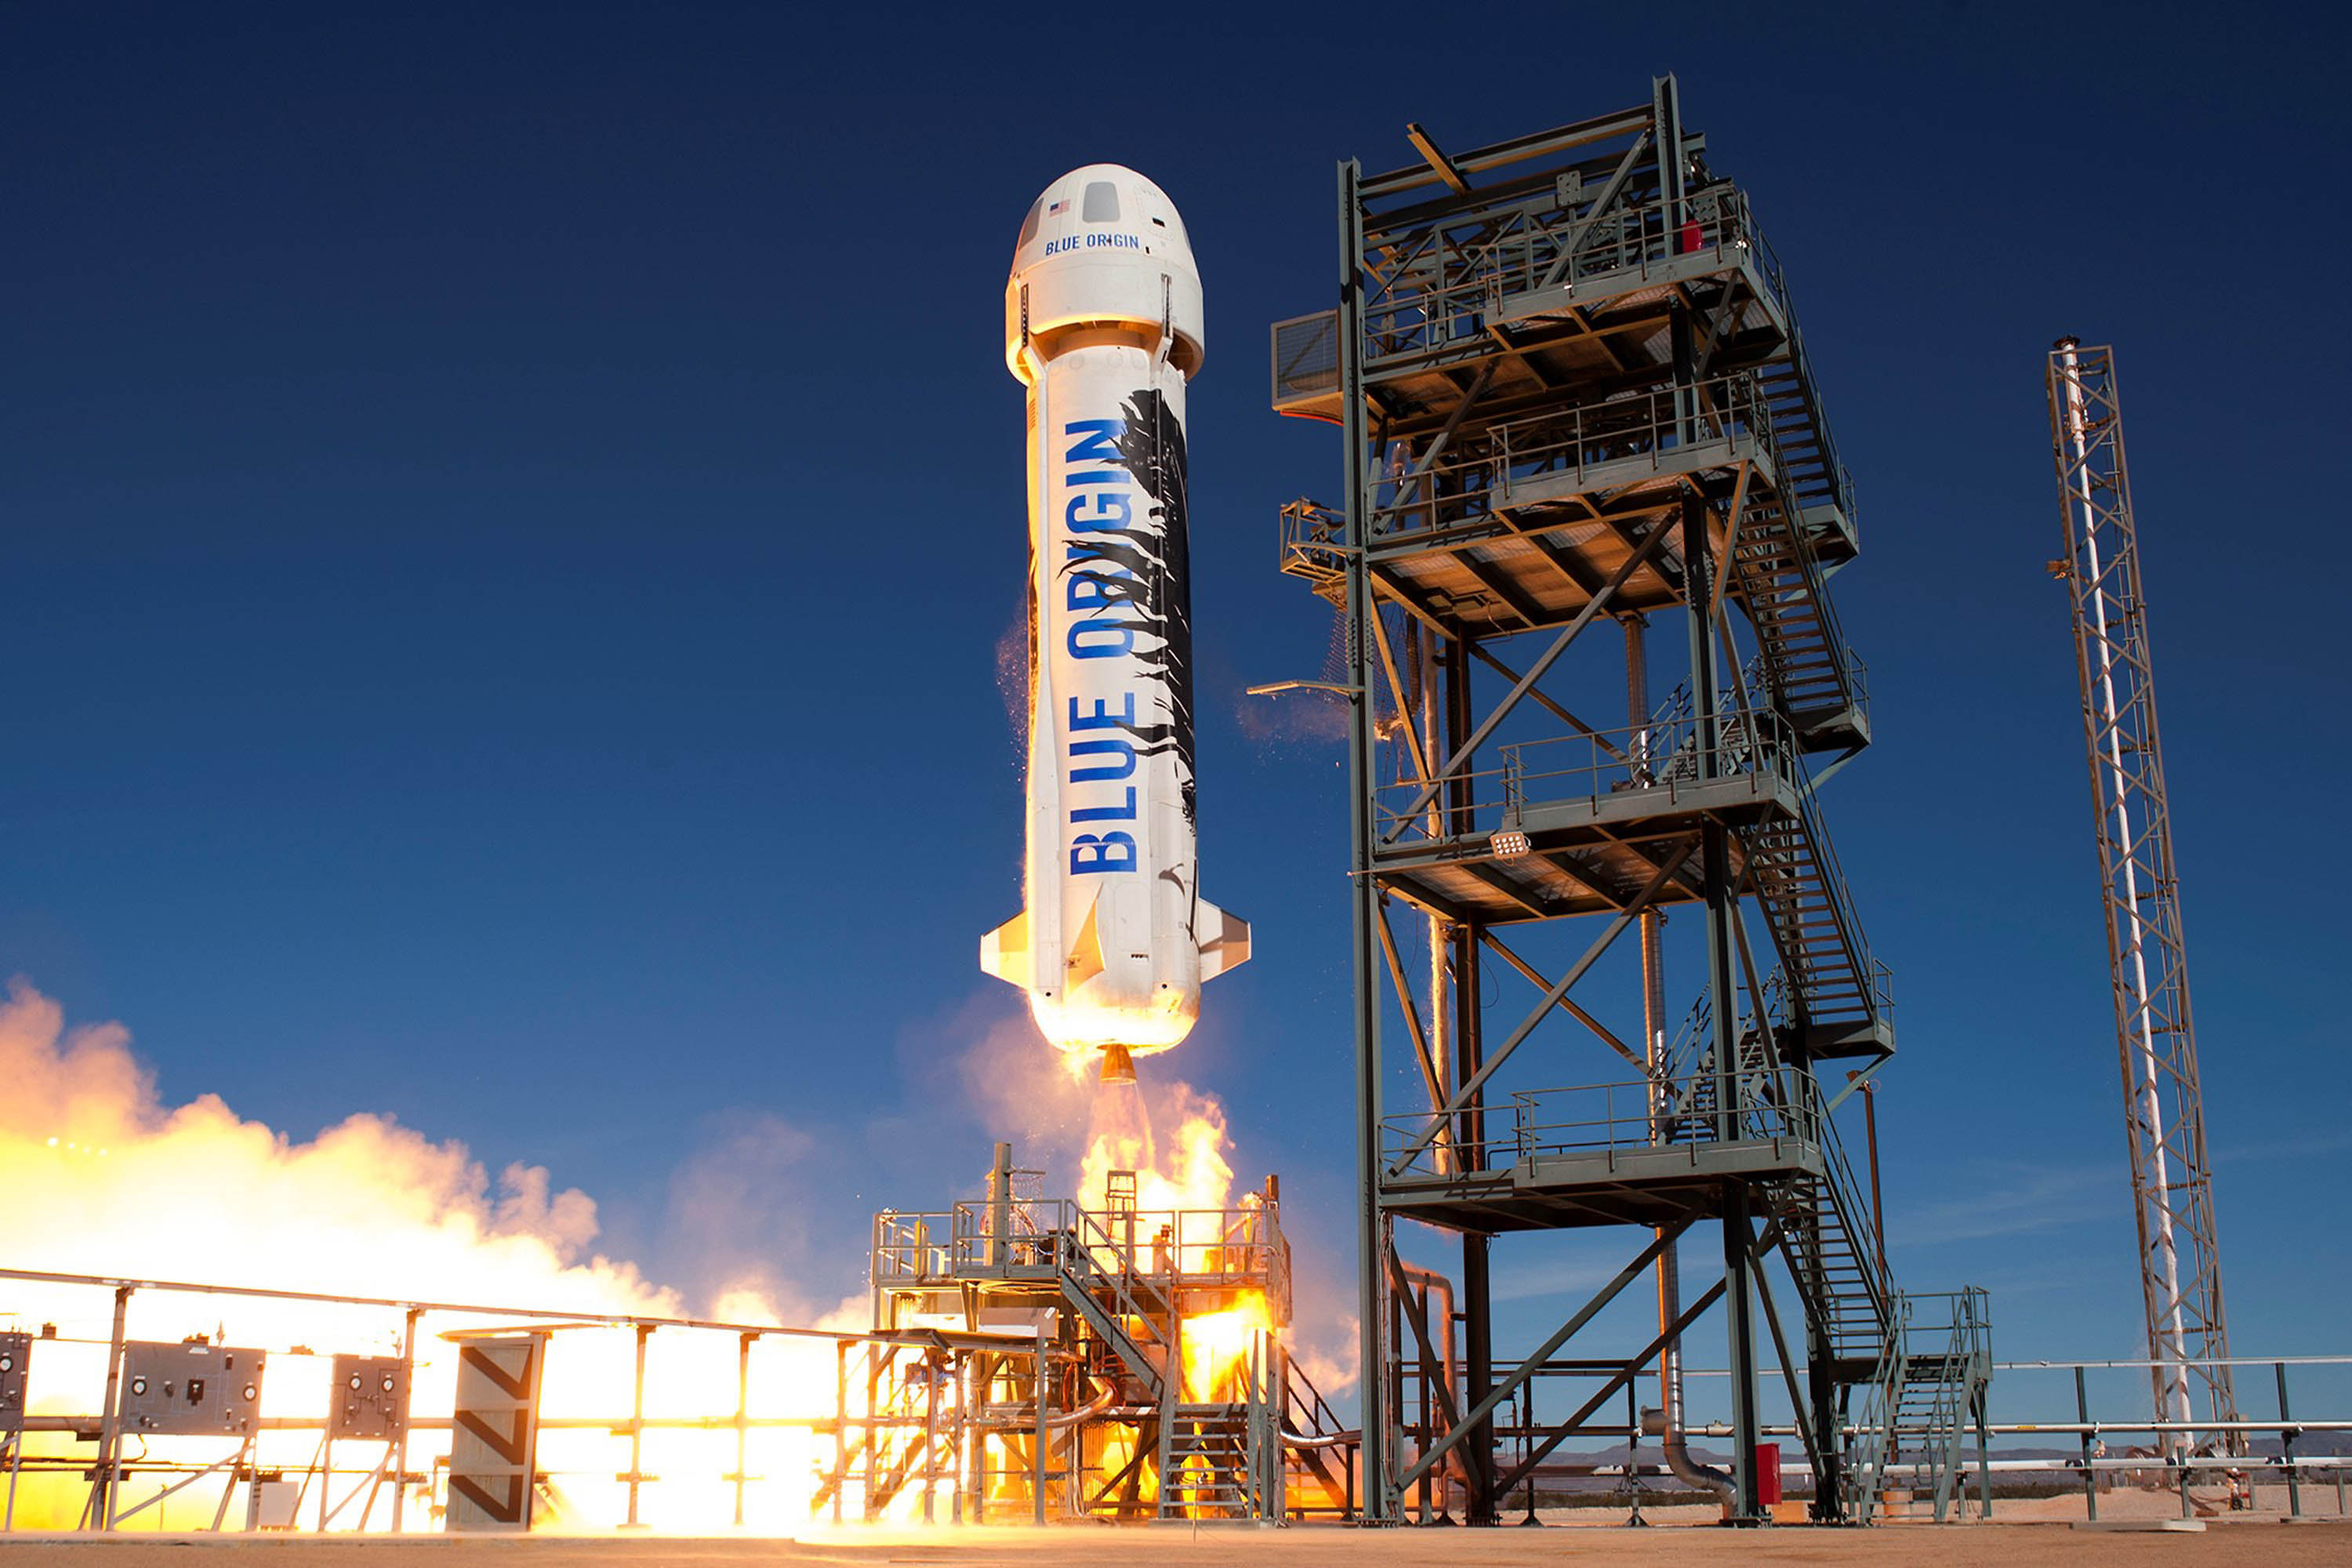 BlueOrigin_NewShepard_Launch